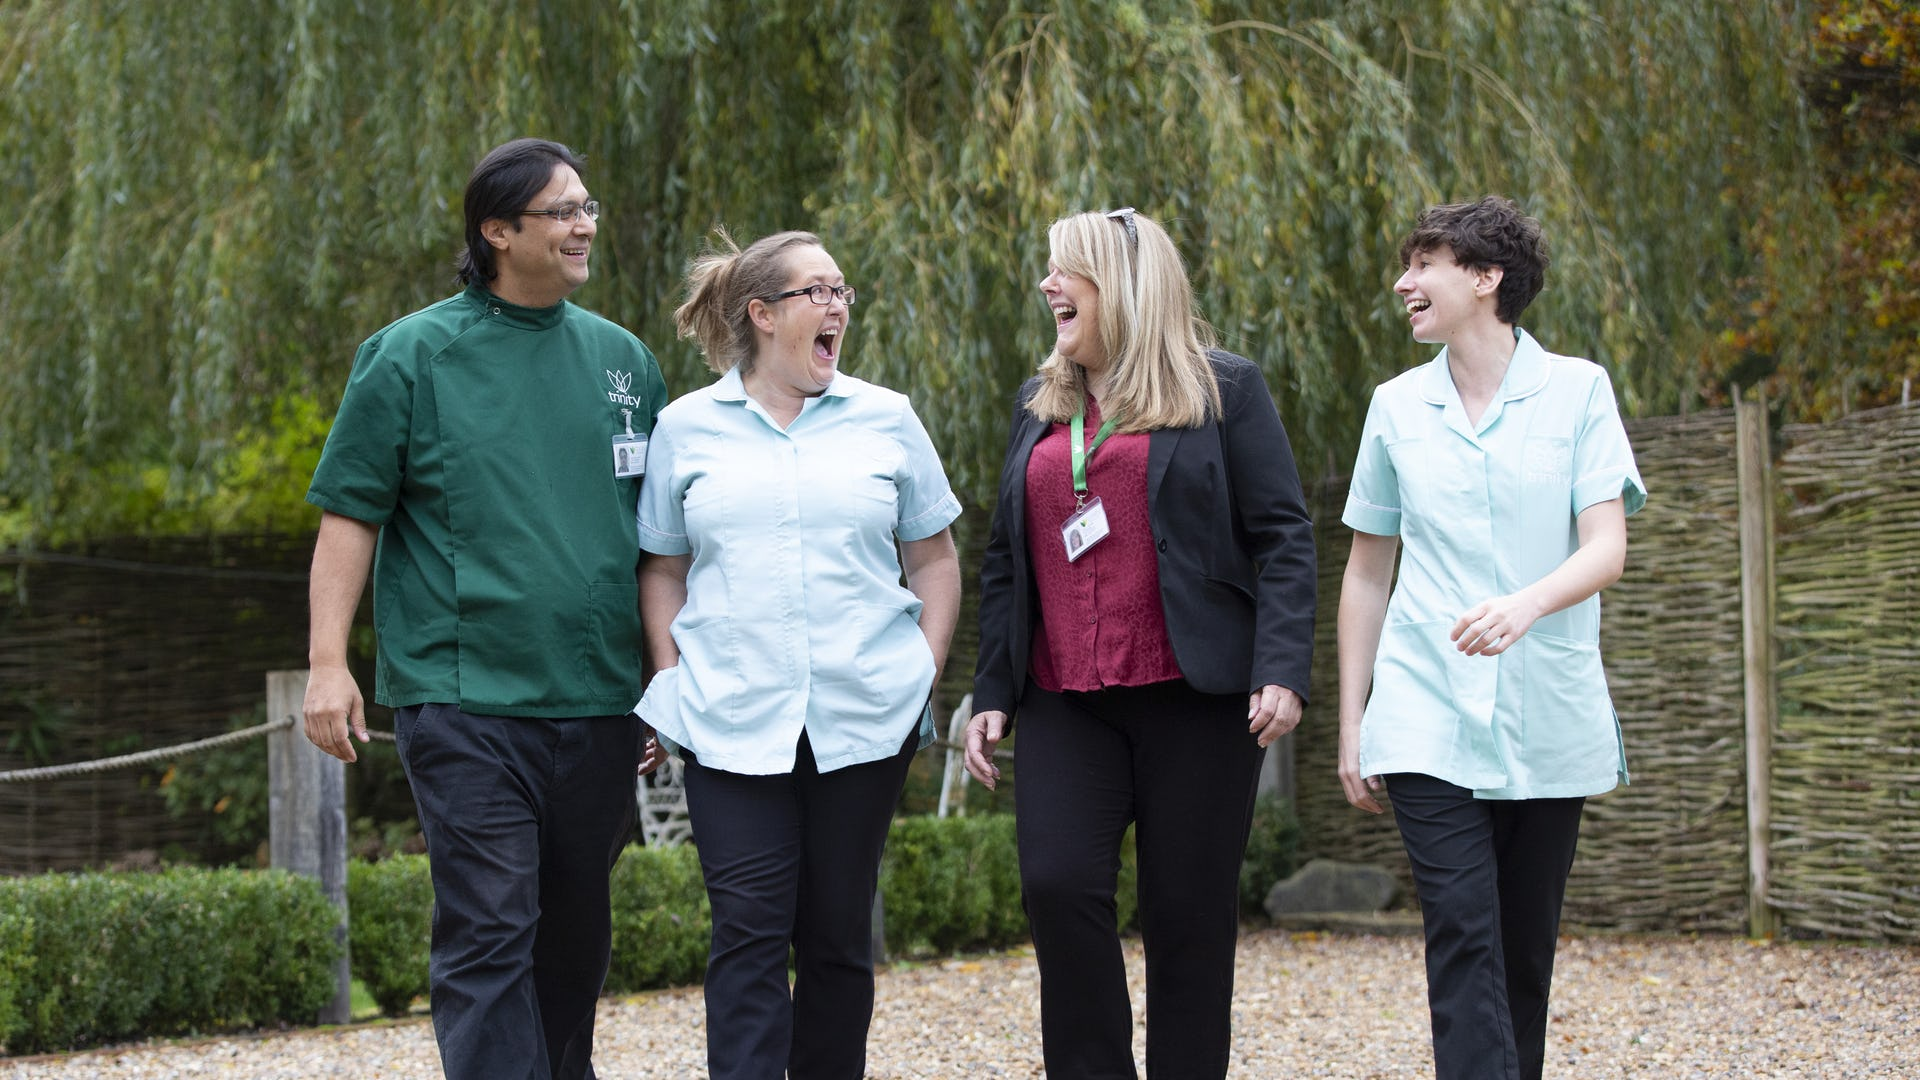 Four Trinity Homecare carers walking side by side